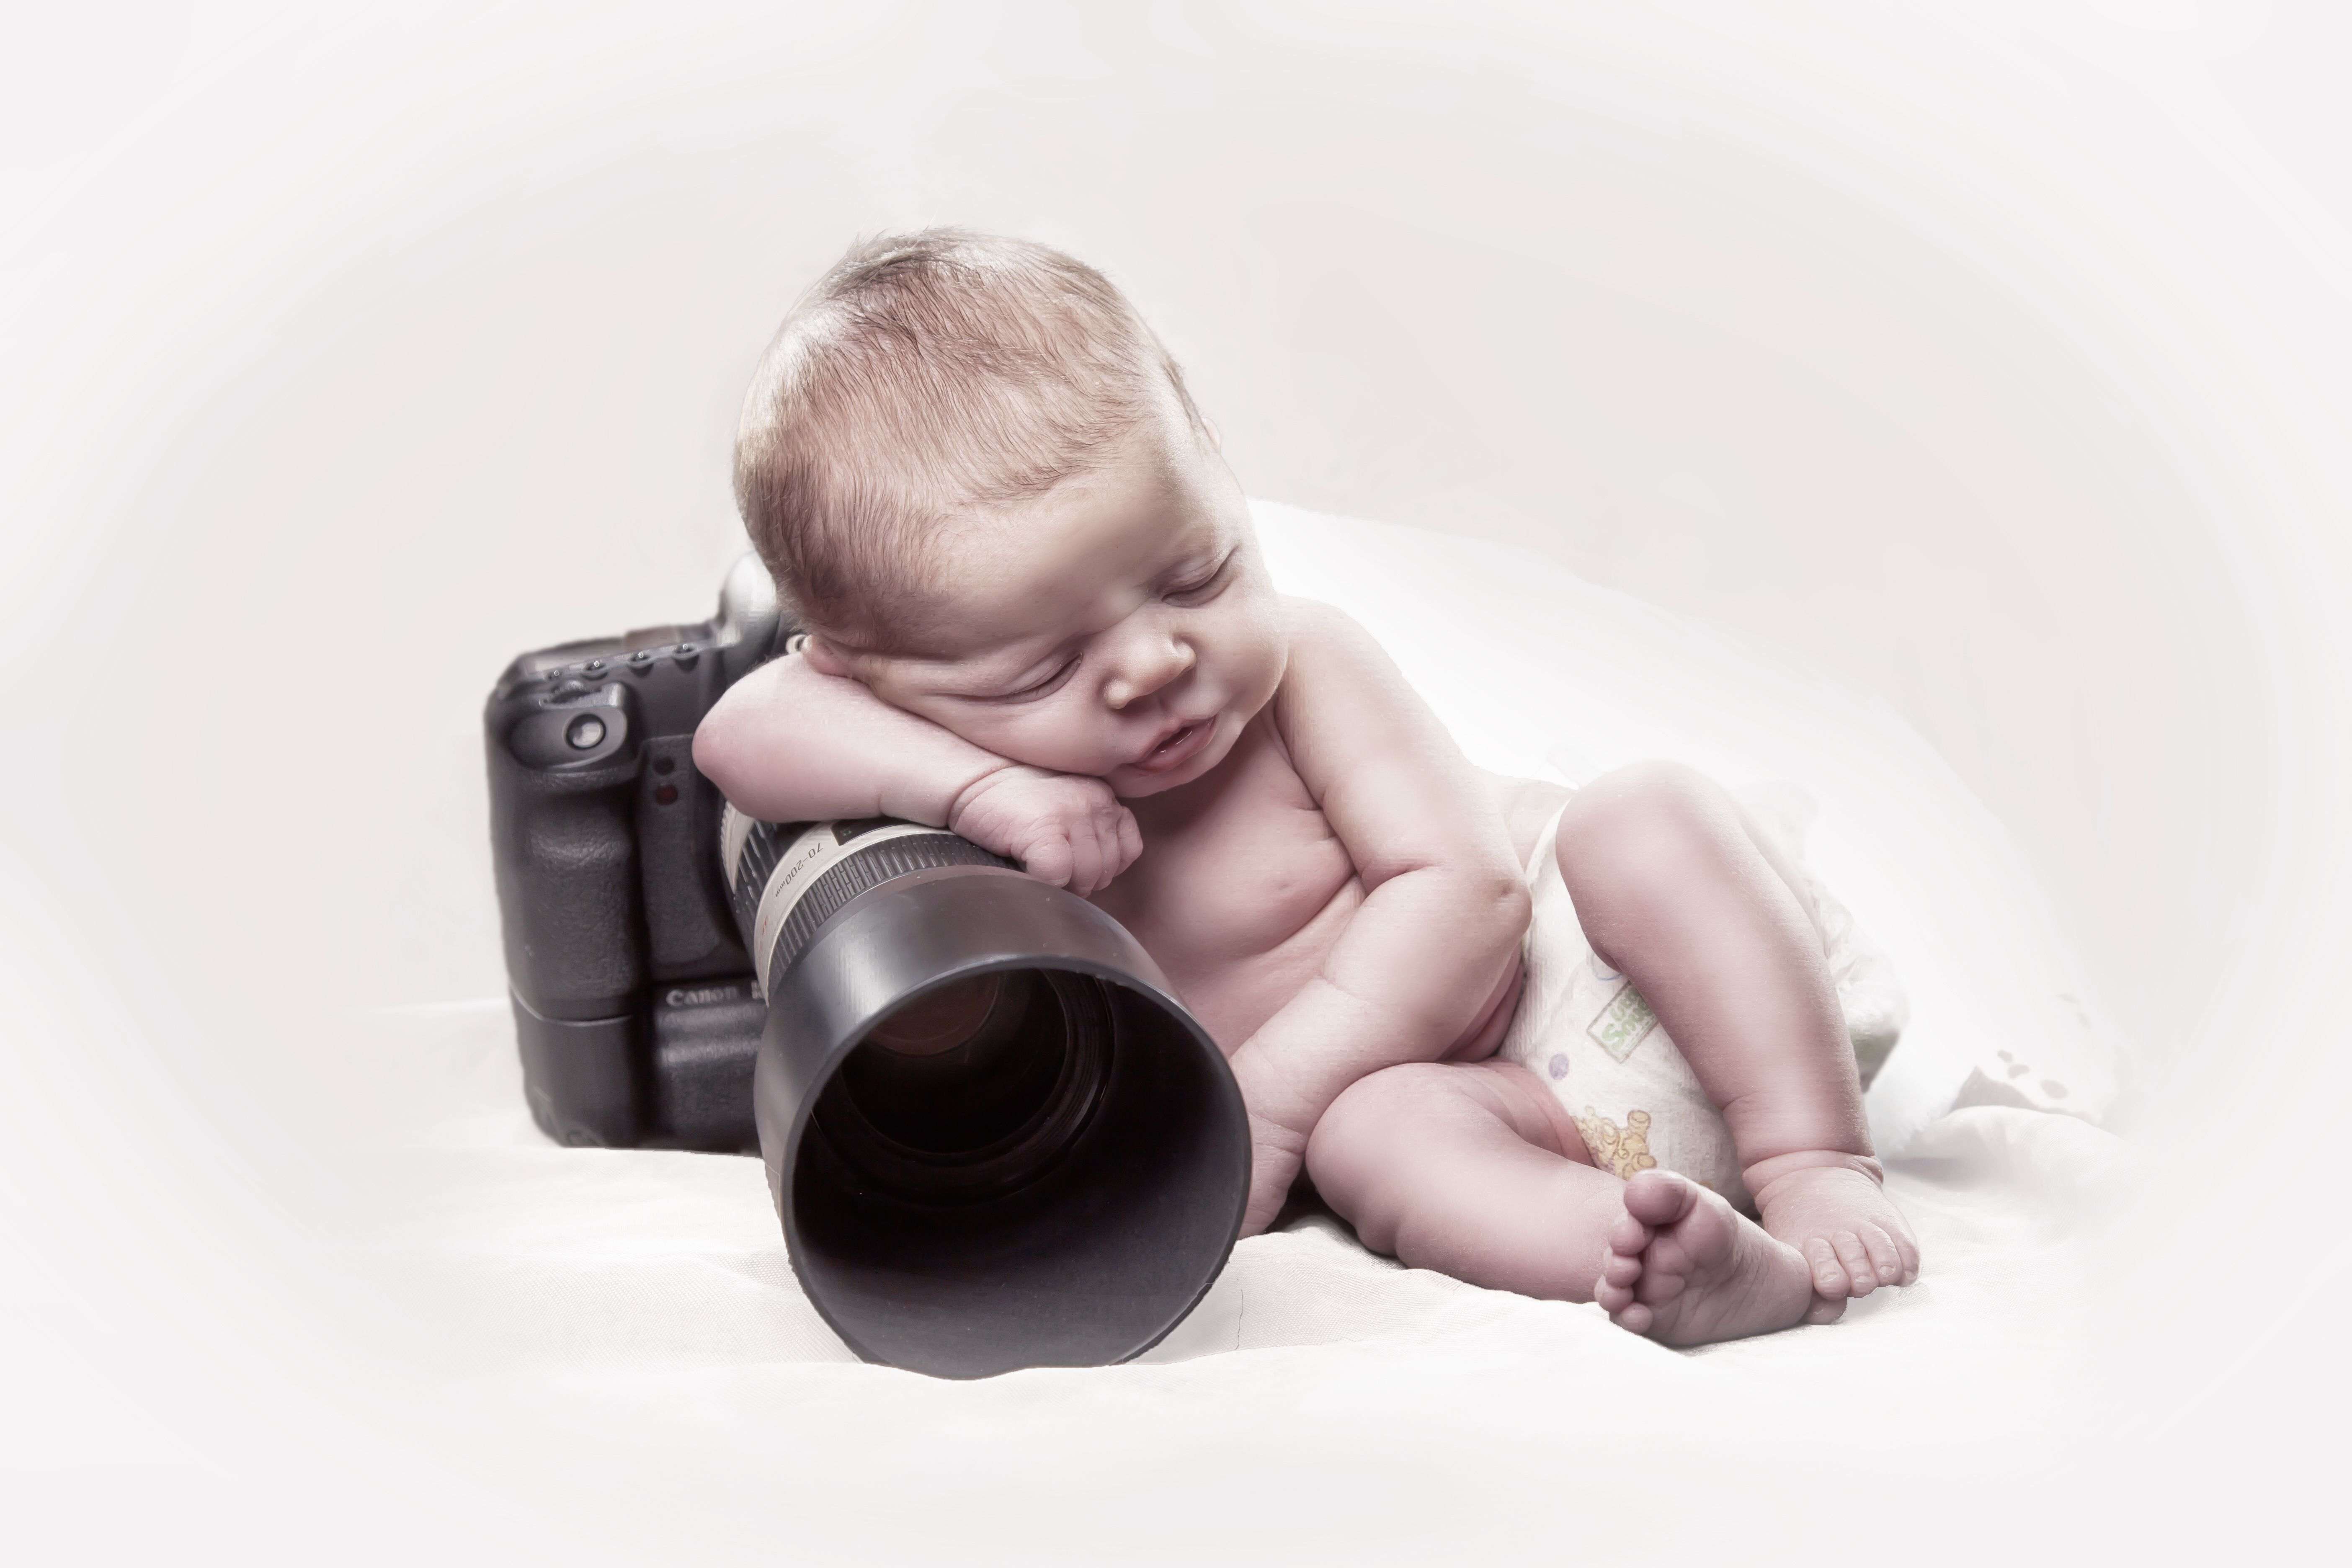 newborn baby camera photographer high key white canon 5d mark II 70 ...